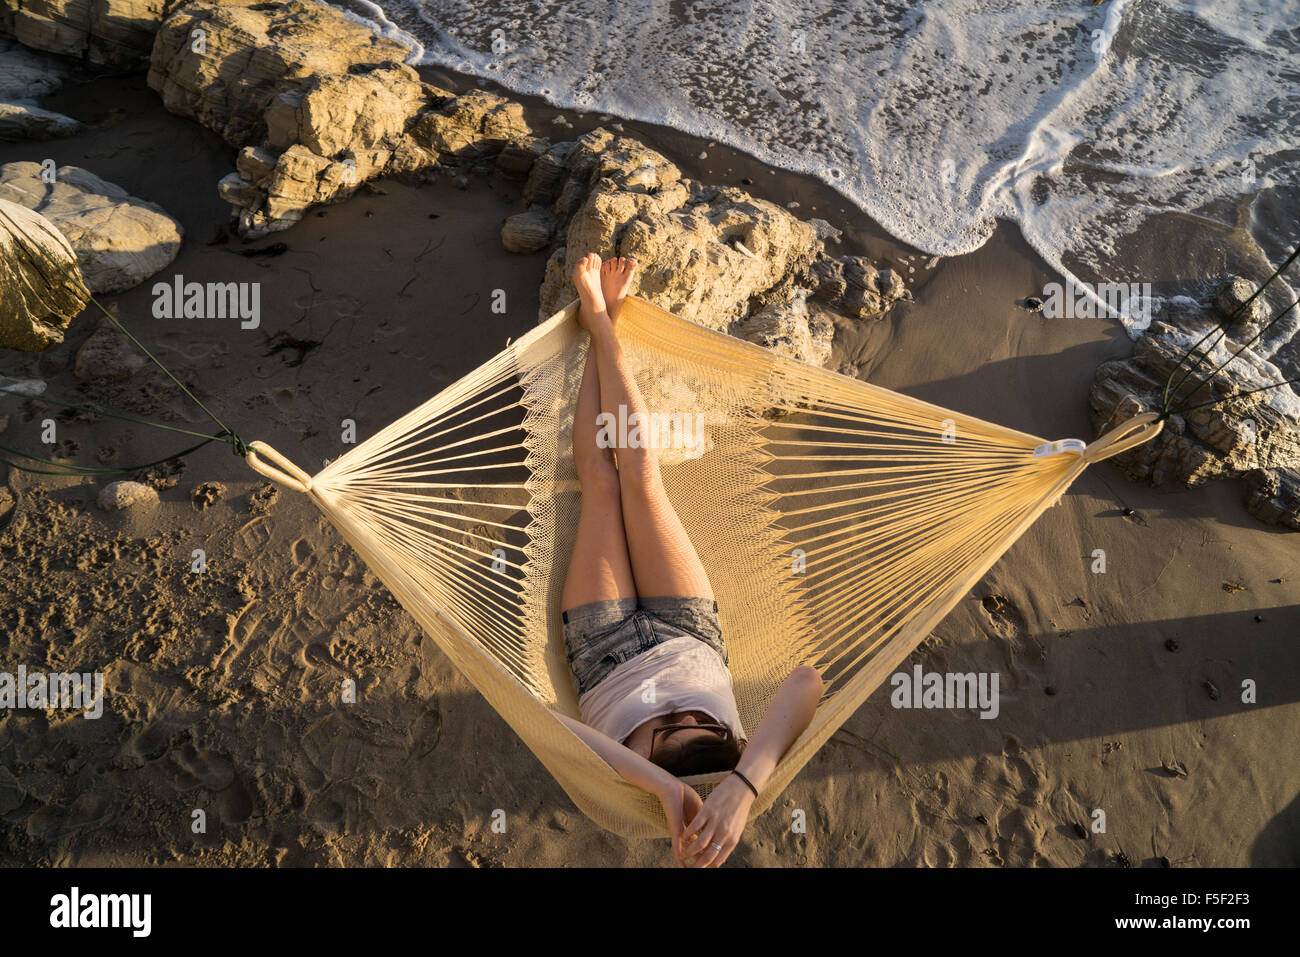 A young woman relaxing in a hammock near ocean waves - Stock Image